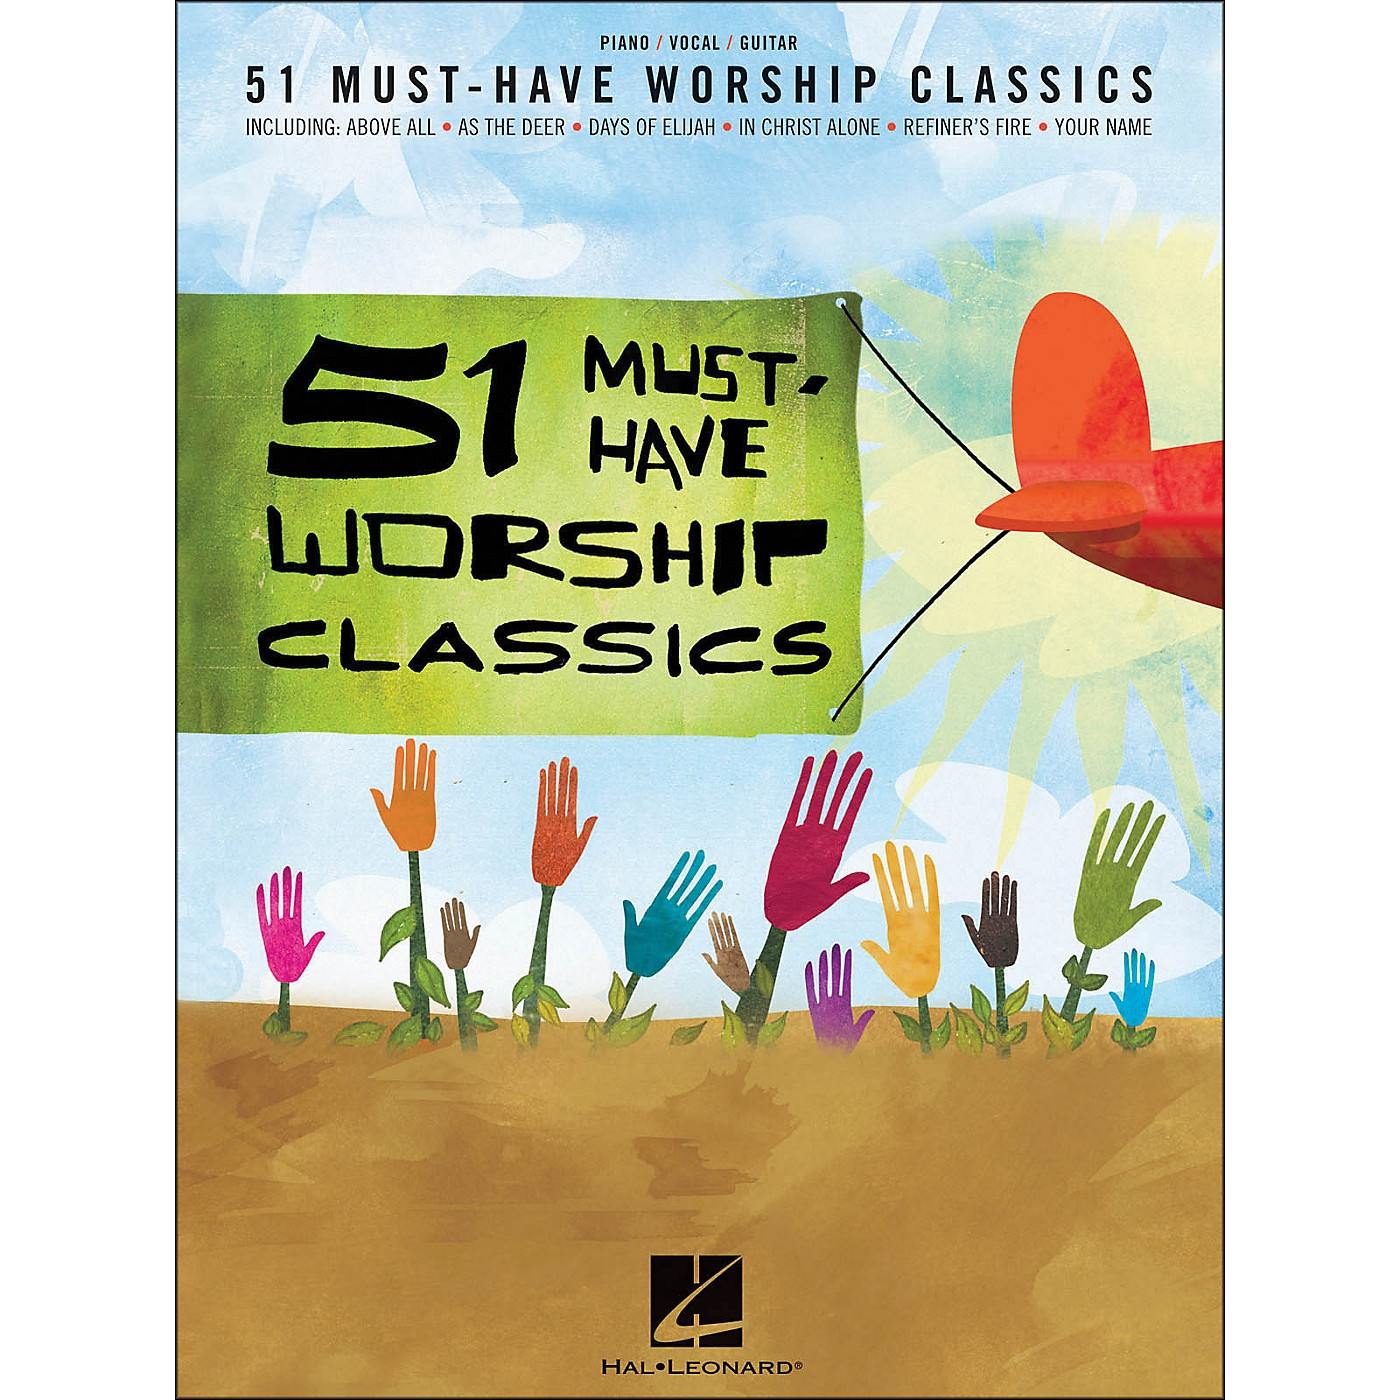 Hal Leonard 51 Must-Have Worship Classics arranged for piano, vocal, and guitar (P/V/G) thumbnail